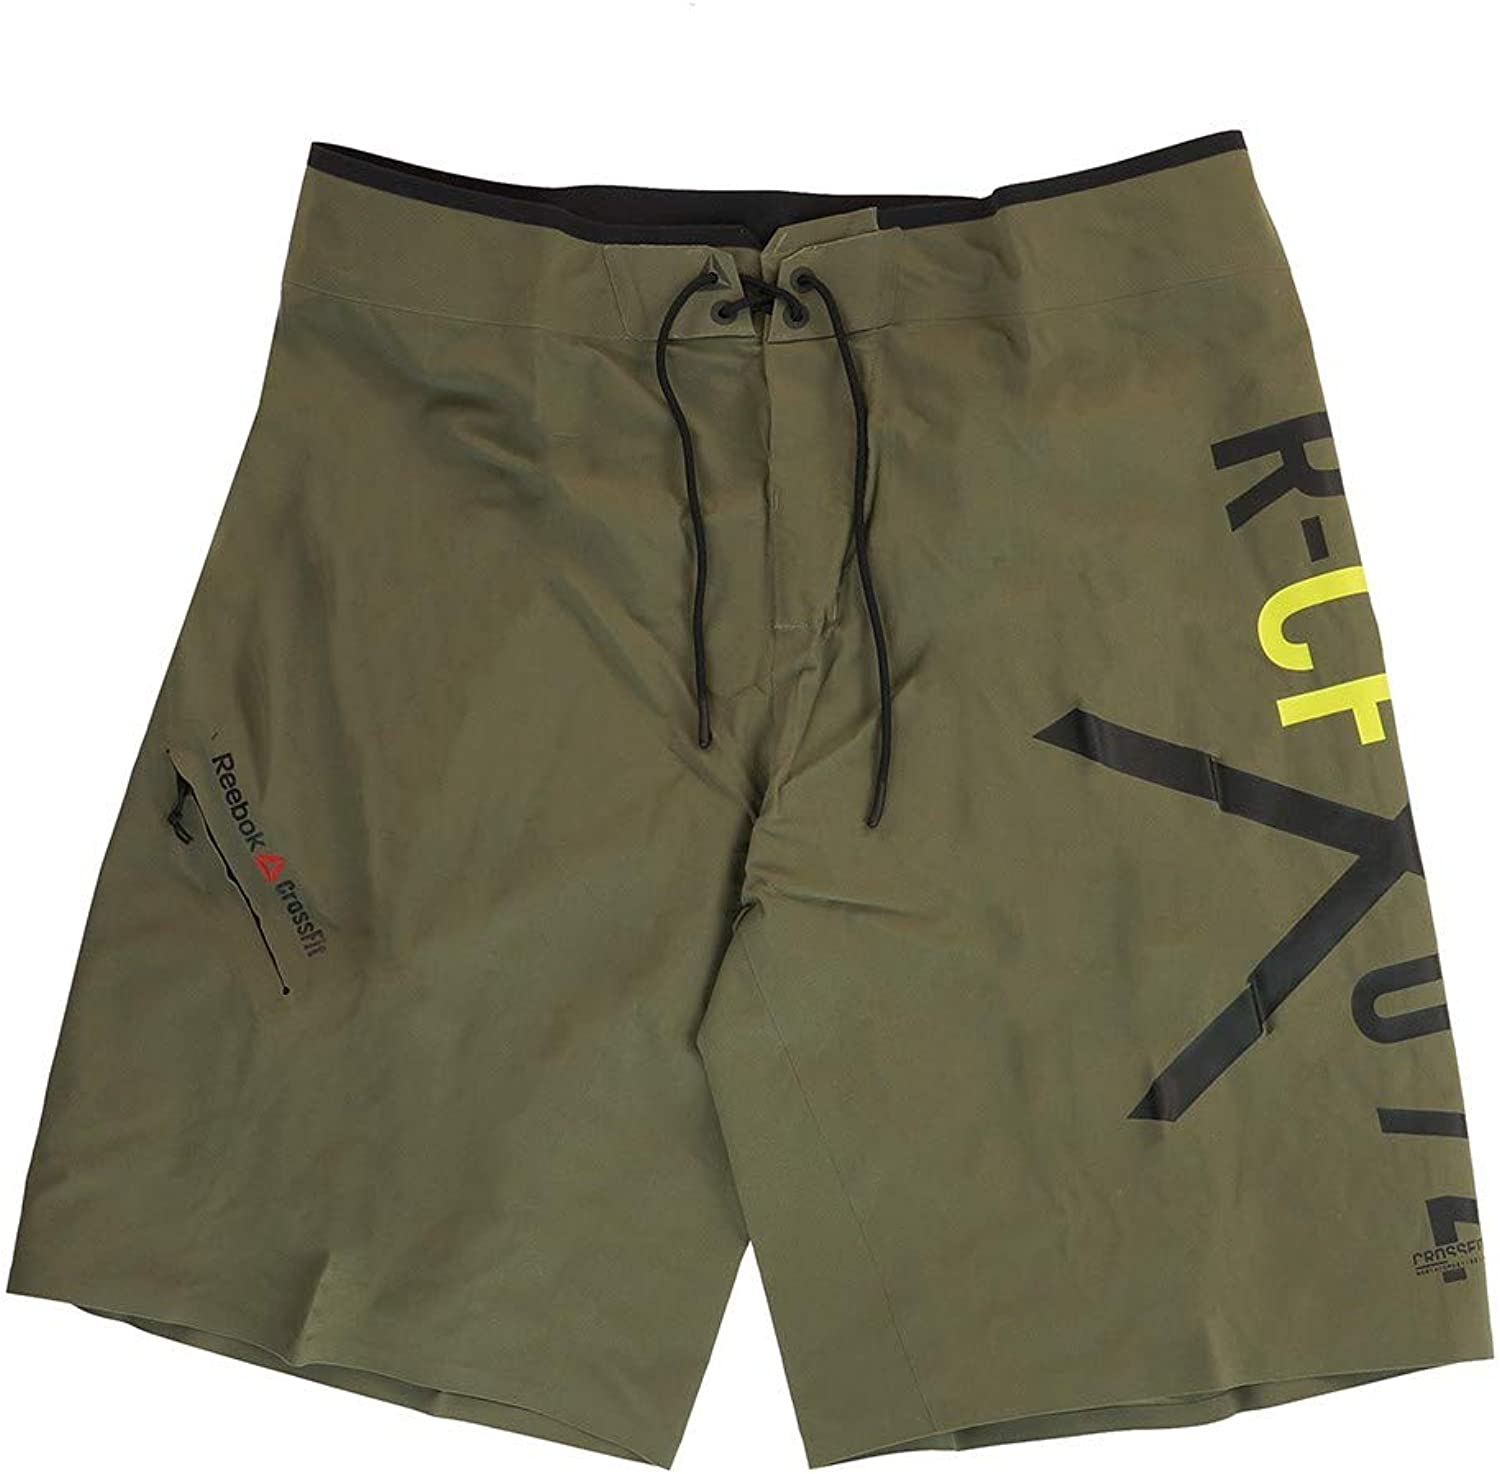 Reebok Men& 39;s Crossfit Pinnacle 74 Training (Olive) Shorts Z89318